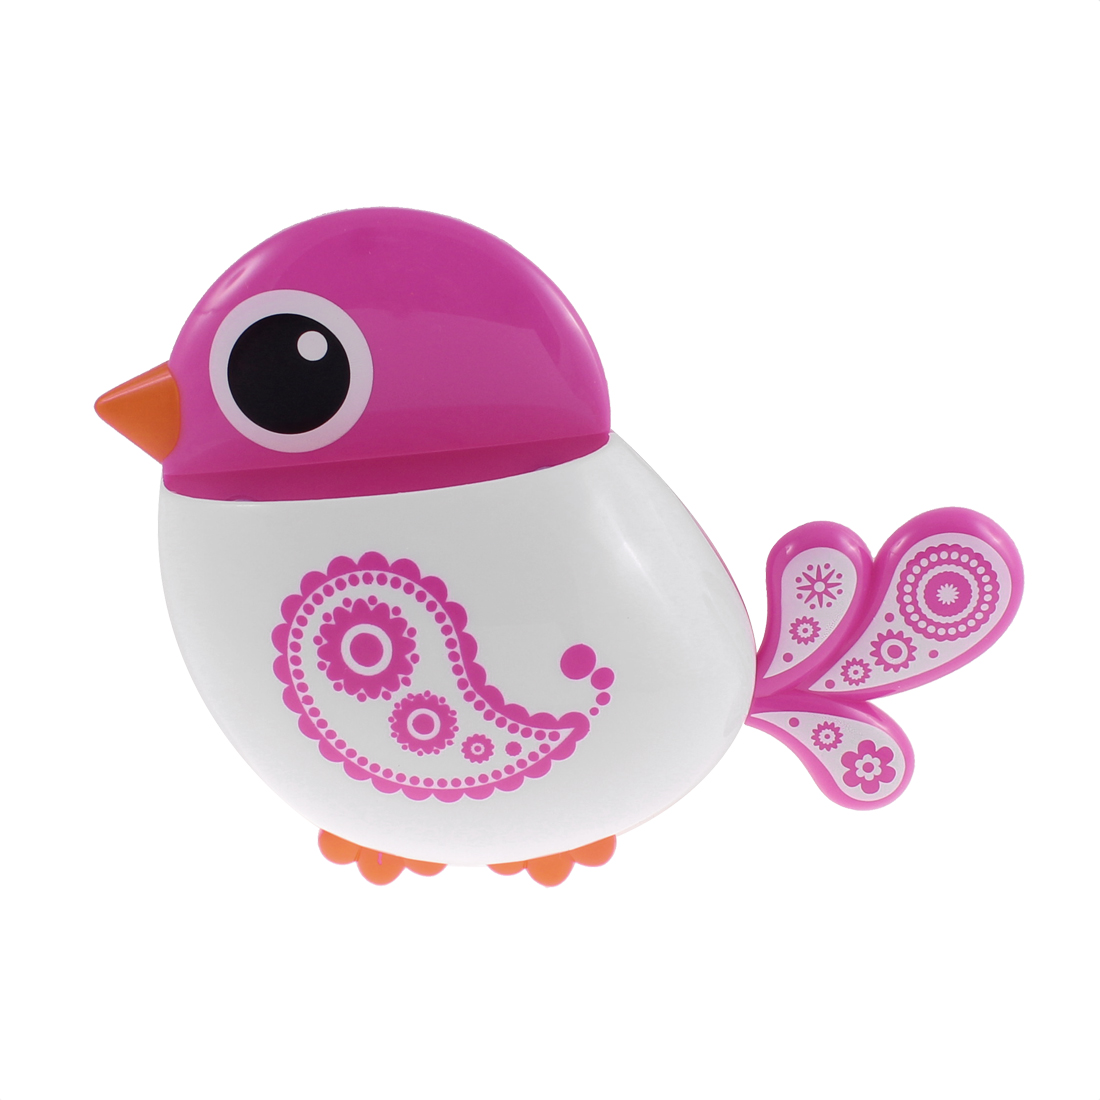 Bathroom Bird Design Wall Suction Stuff Toothbrush Holder Organizer Fuschia